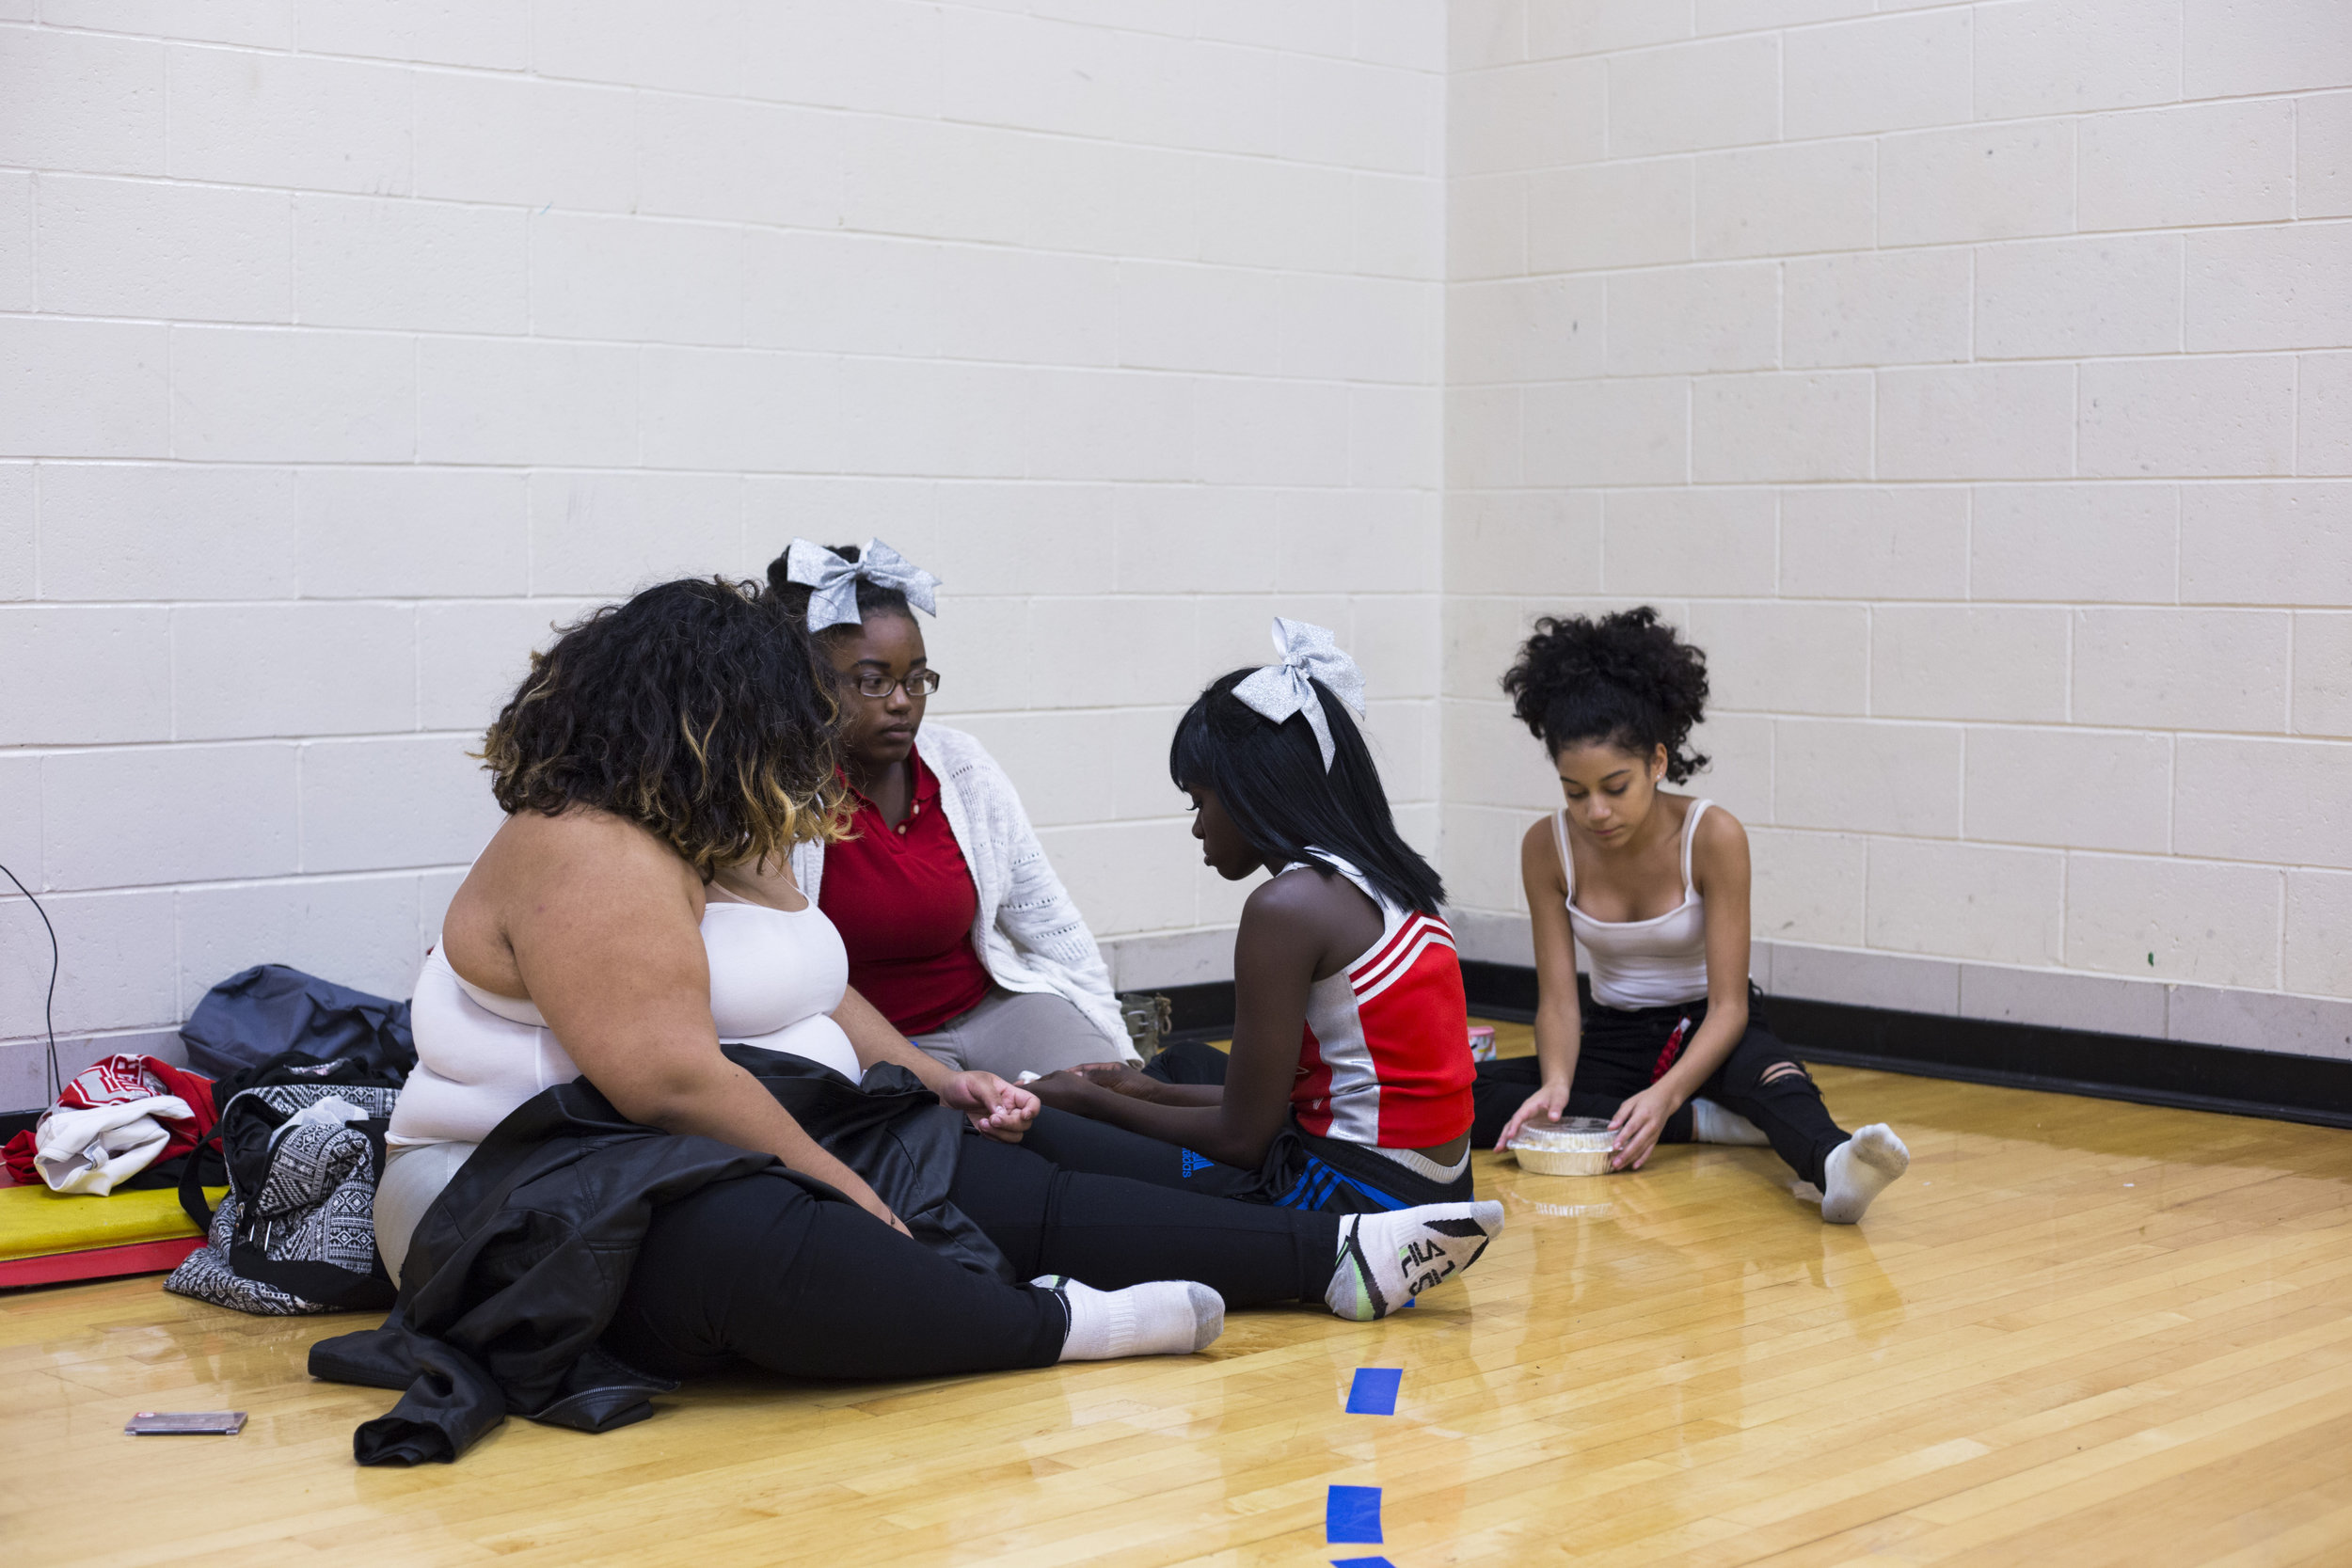 London Gladden, 17, is consoled by her friends and teammates after a boy in the hallway of the auditorium had made a remark that made her cry before cheerleading practice at the High School of Commerce in Springfield, Mass., on Friday, September, 8, 2017.